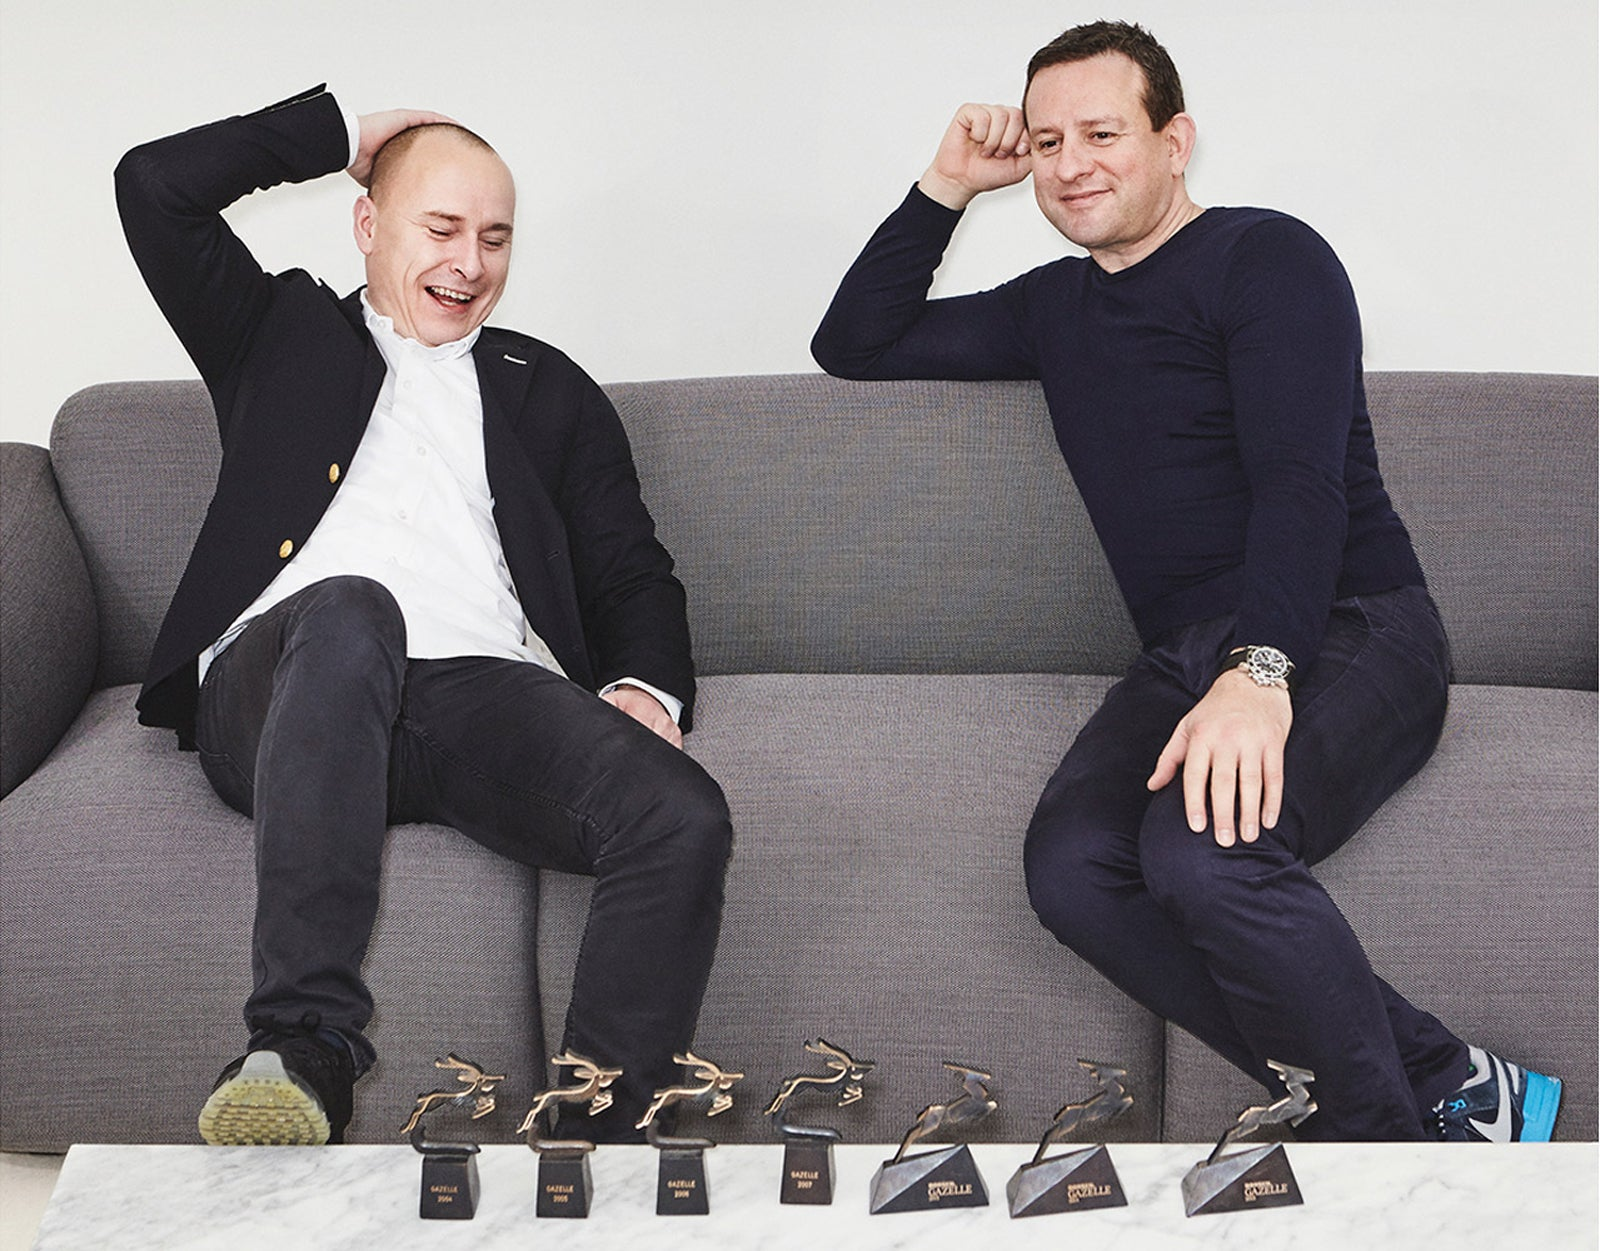 Founders of Normann Copenhagen Jan Andersen and Poul Madsen